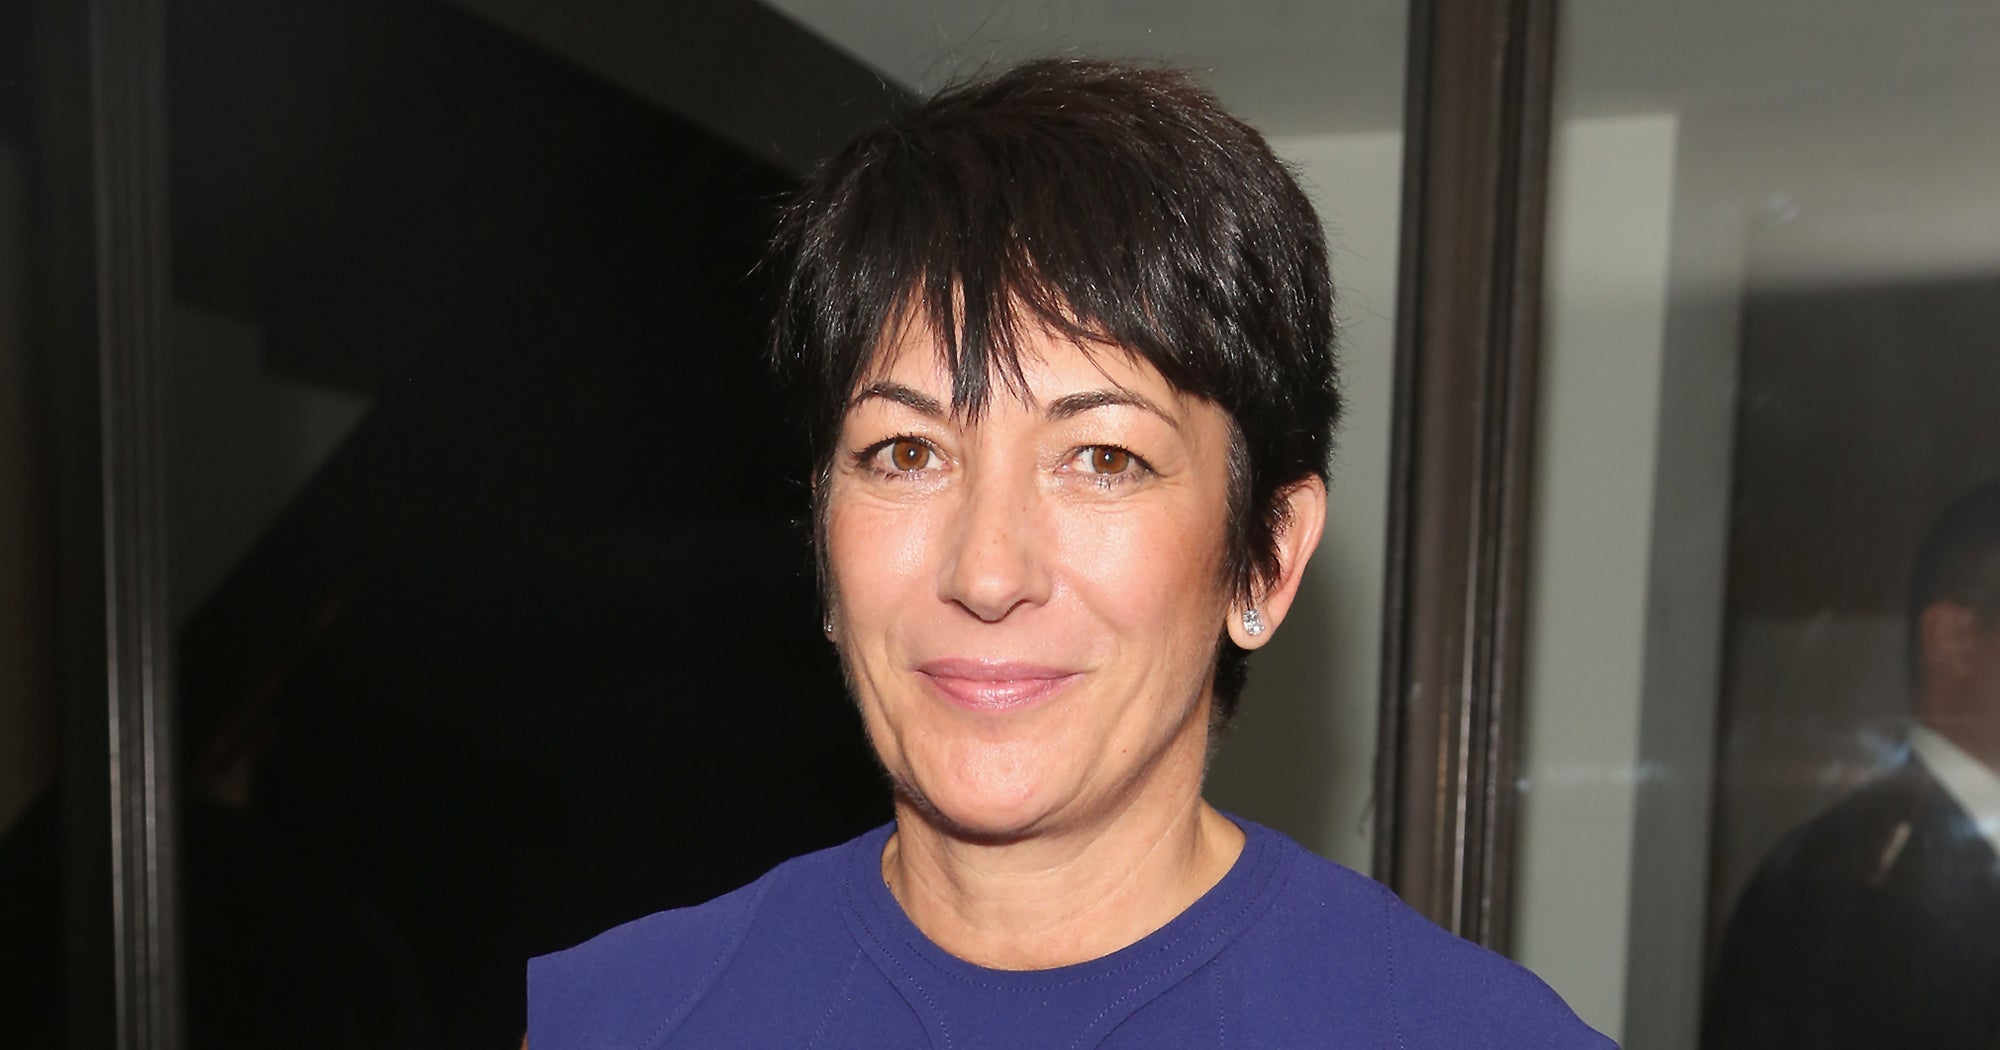 Ghislaine Maxwell Was Complicit In Jeffrey Epstein's Abuse, New Documents Allege